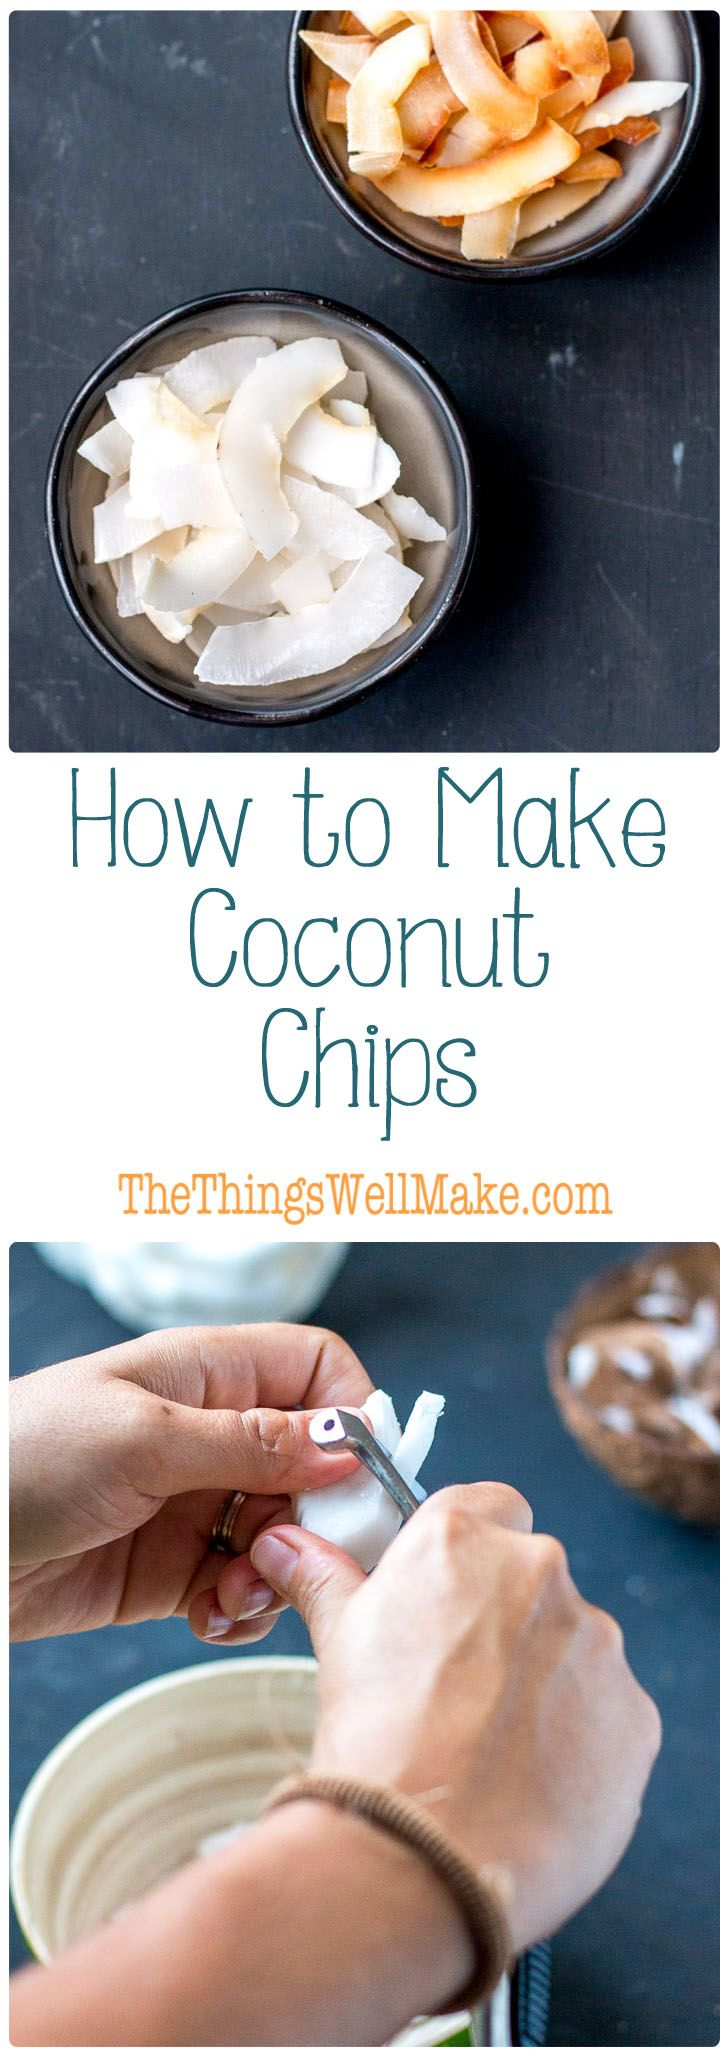 Making coconut chips from a fresh coconut is easier than it looks! Find out how to make coconut chips and toasted coconut chips.